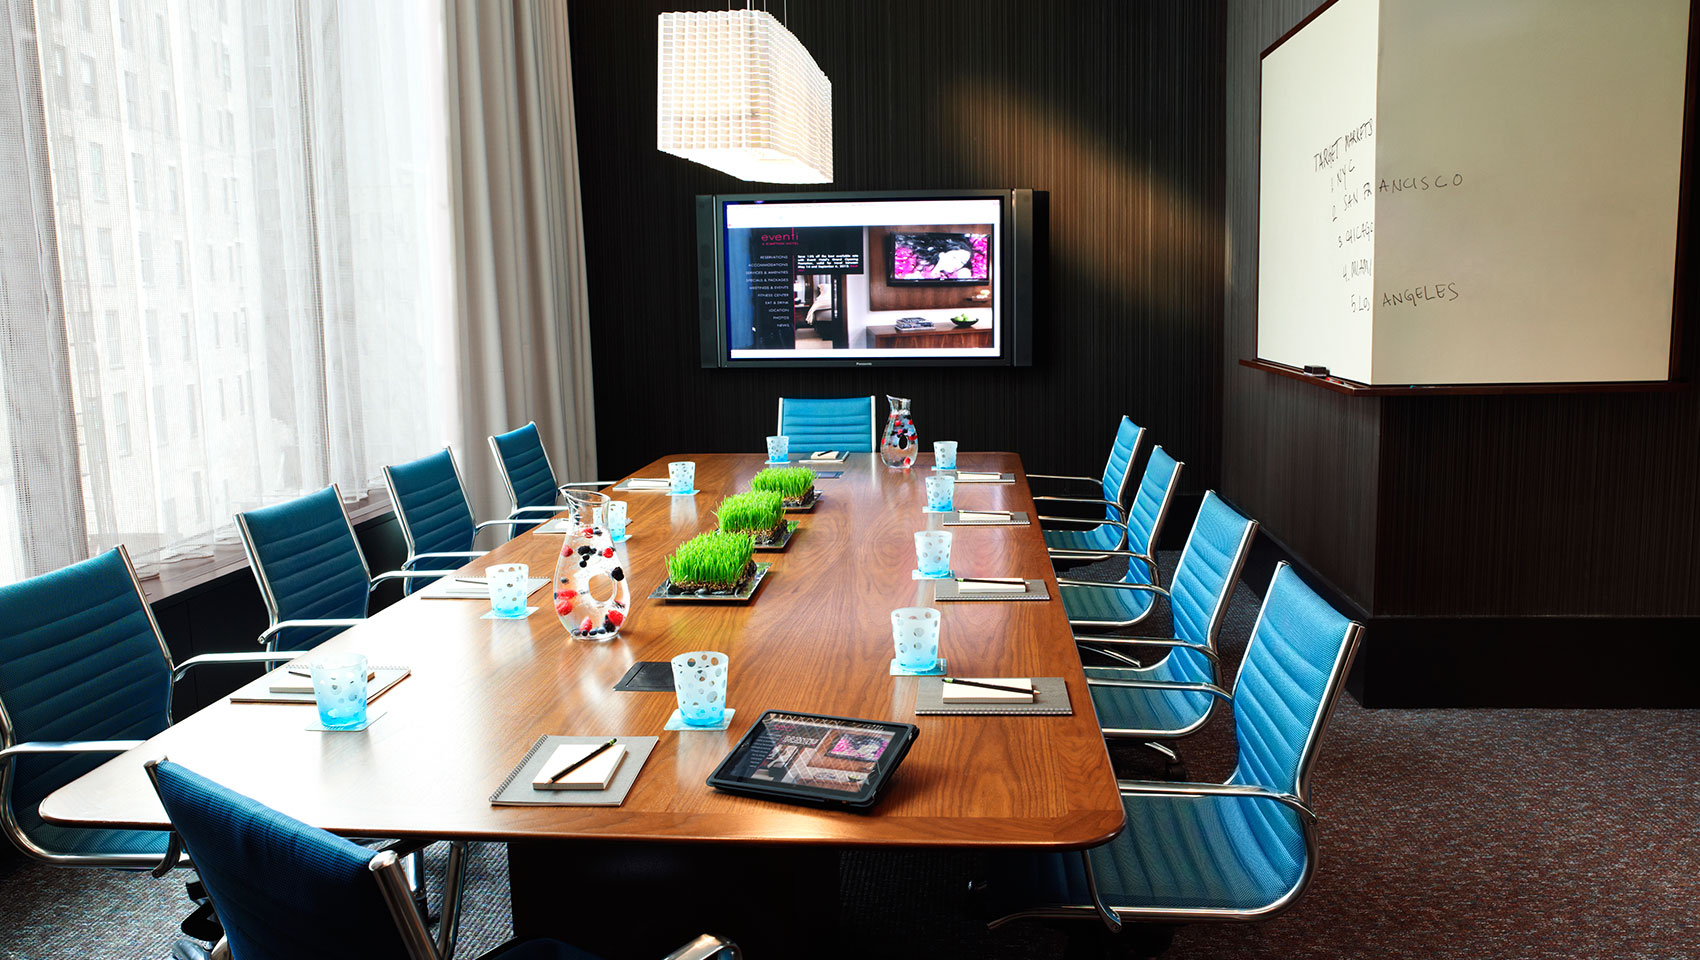 Venture Boardroom with large wooden table with notepads facing presenter screen and wrap-around whiteboard